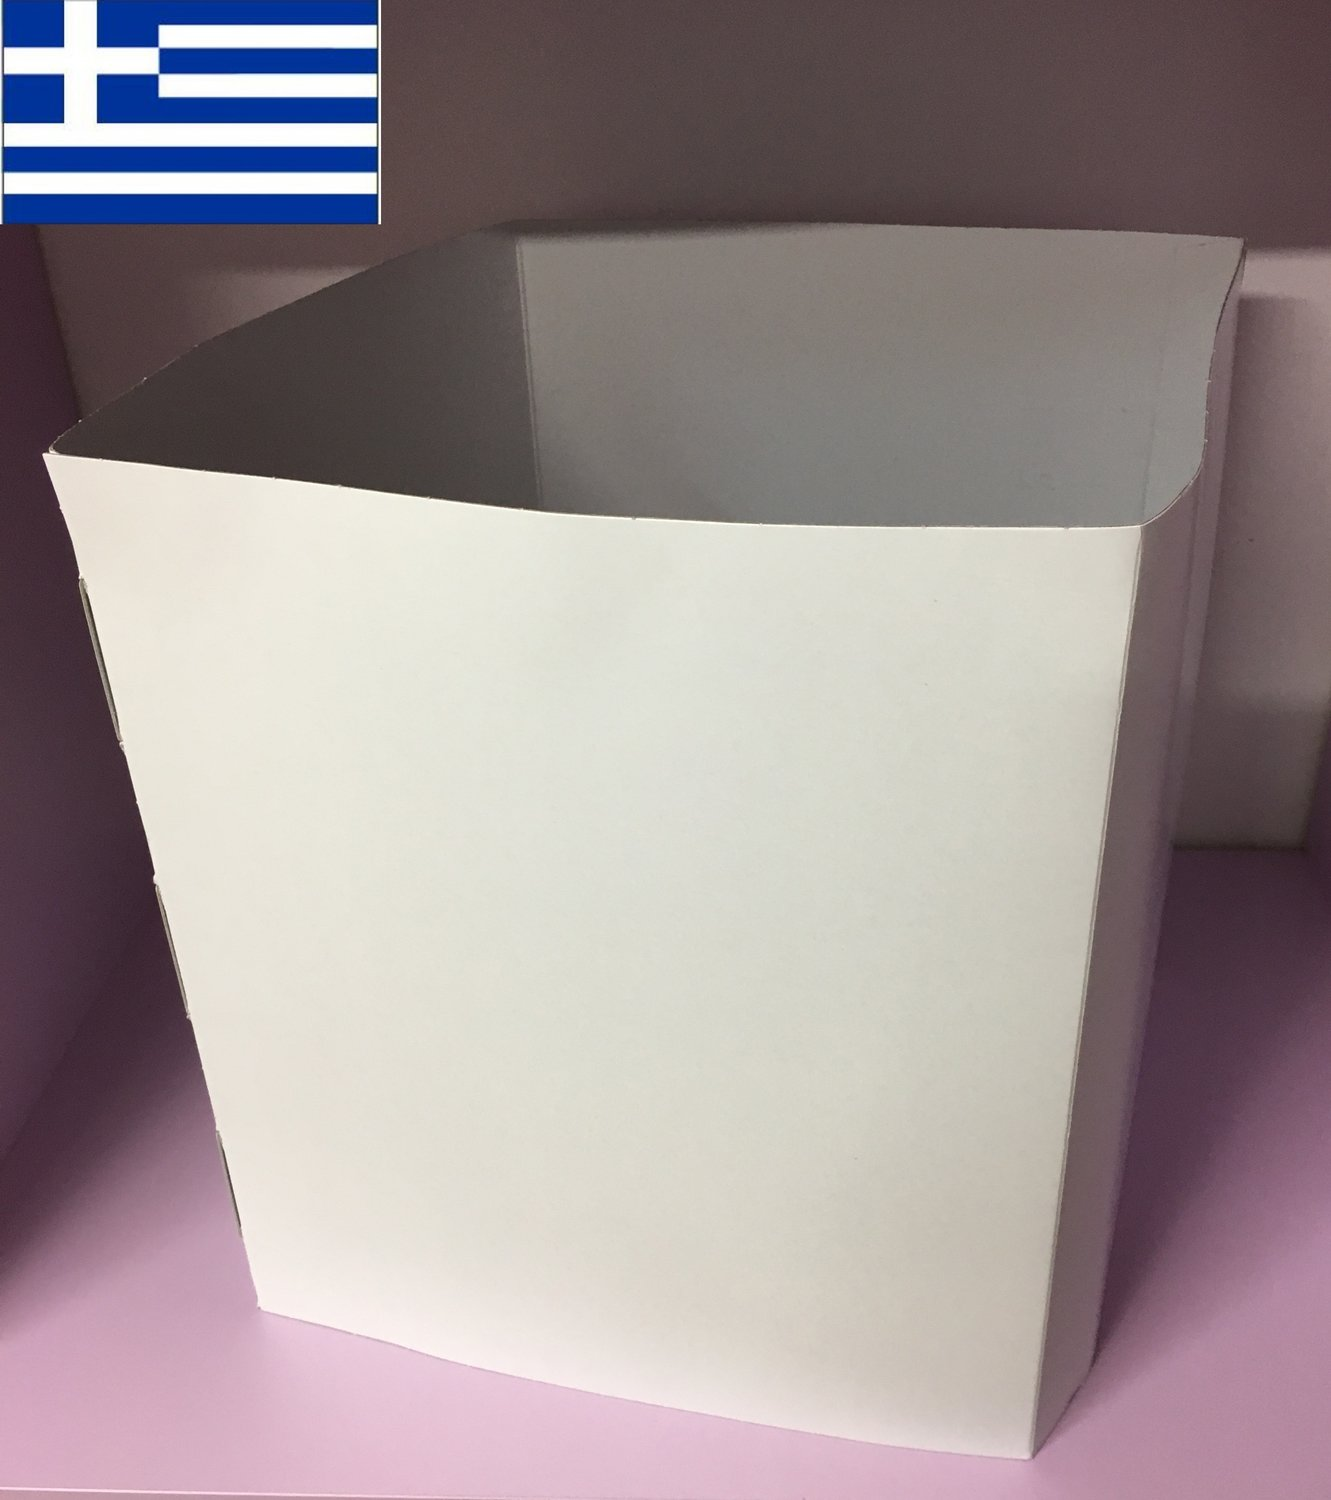 Extends your 30cm box to a height of 35cm - Αποστάτης 35εκ Ύψος για 30εκ Κουτί